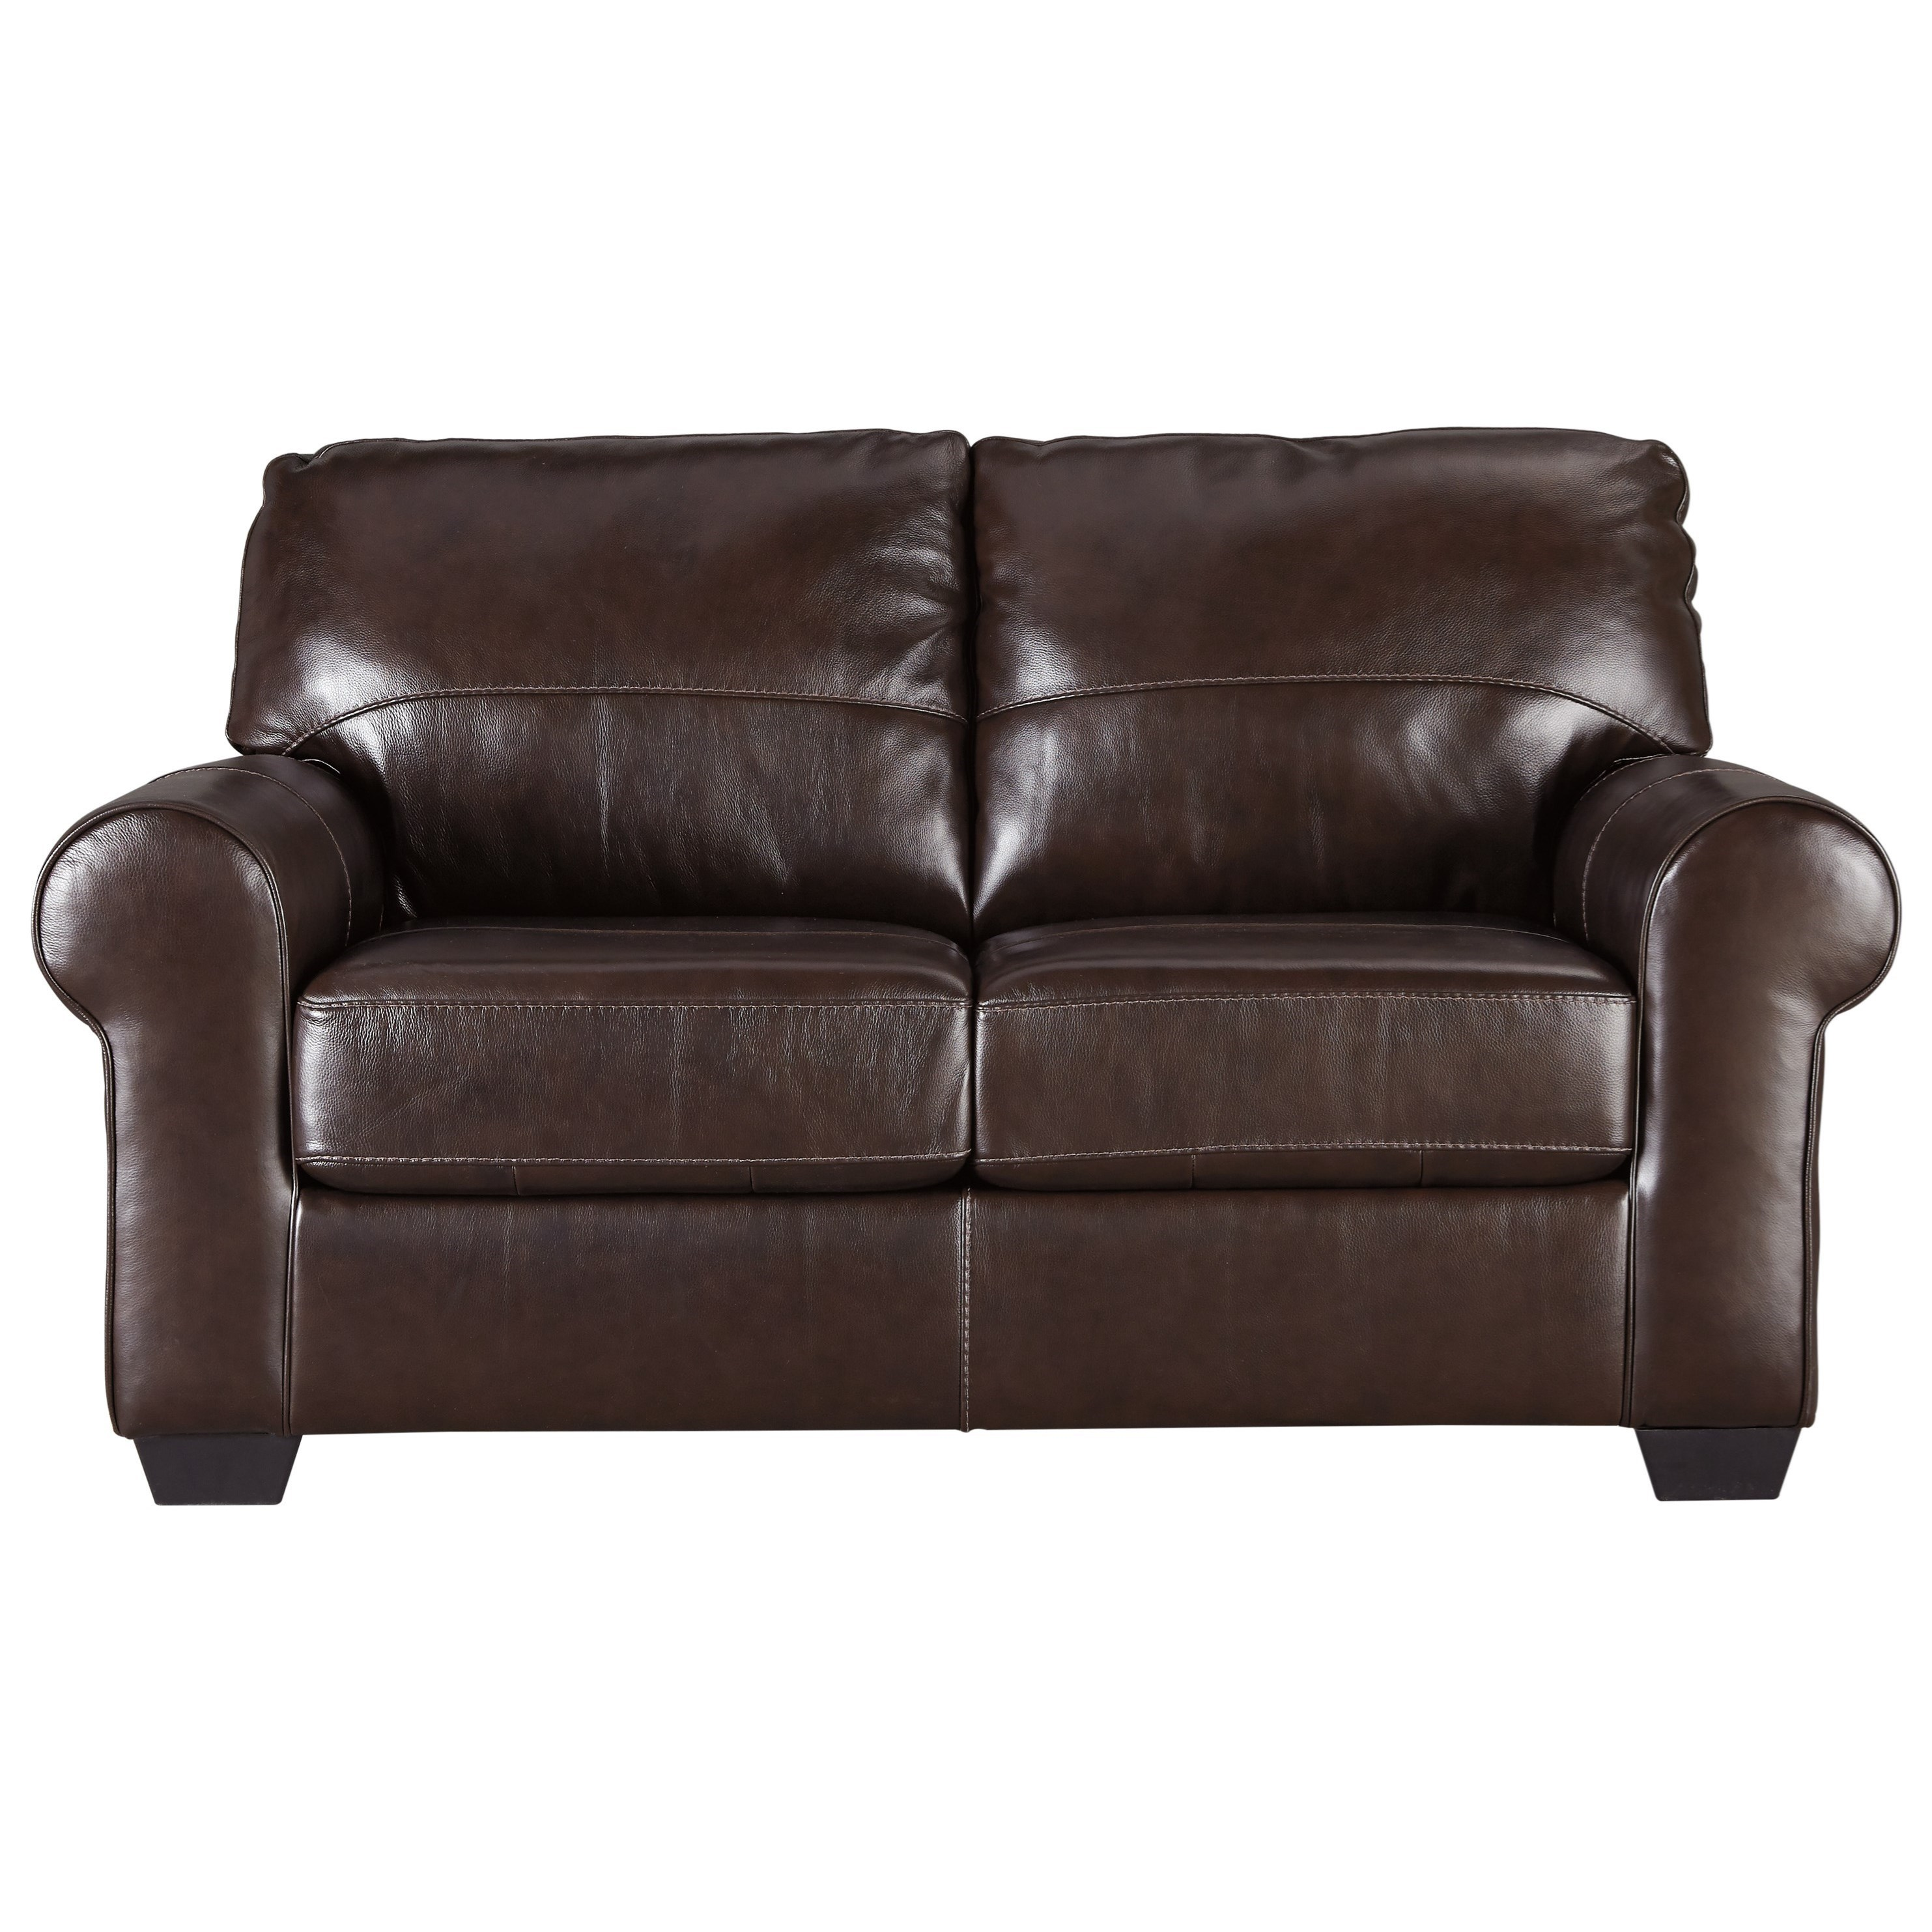 Signature Design By Ashley Canterelli 9800235 Leather Match Loveseat With Rolled Arms